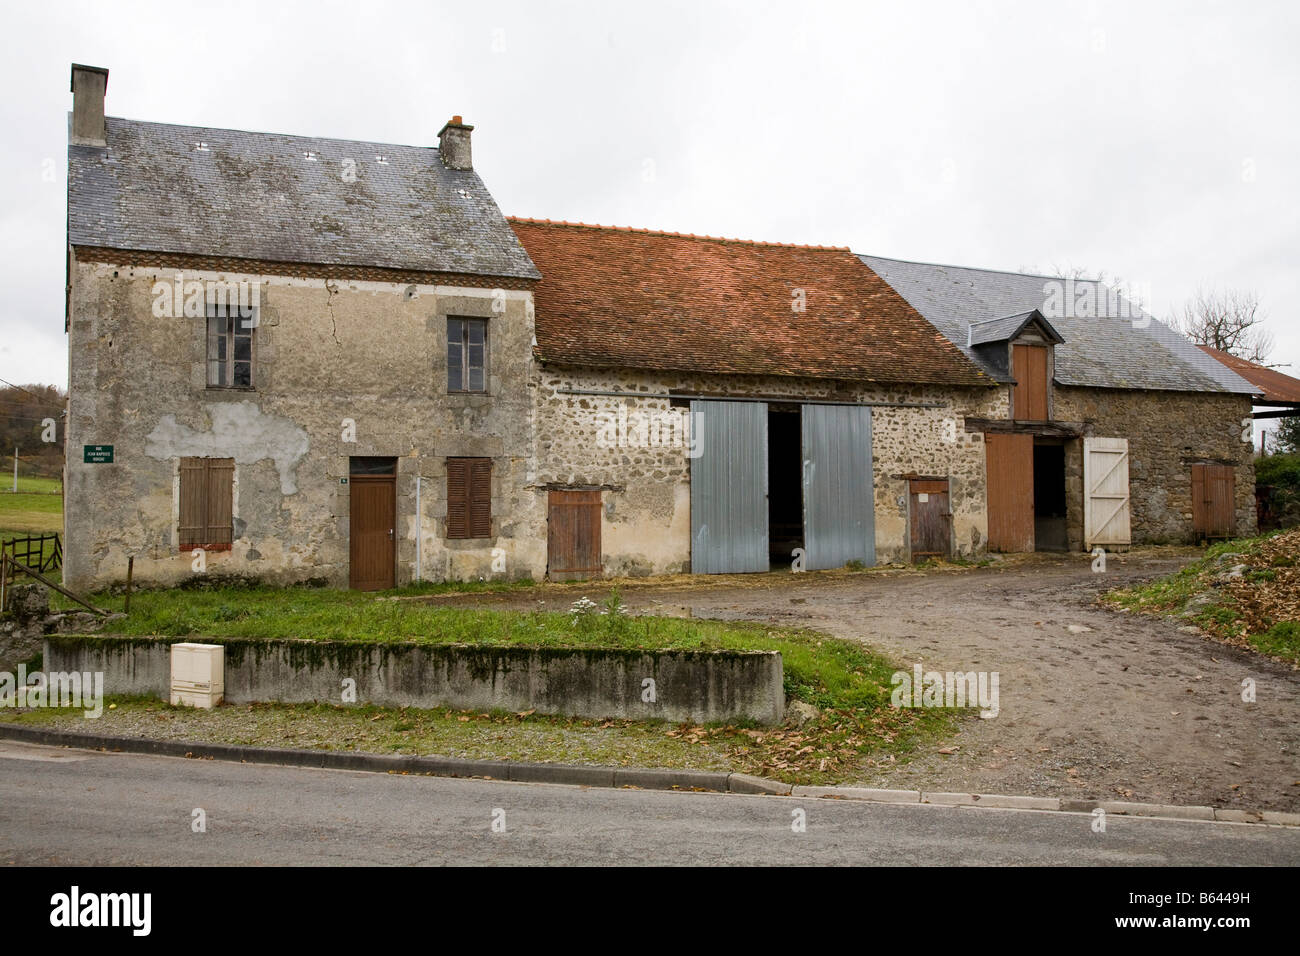 French Farm House Building Used For Keeping Sheep In